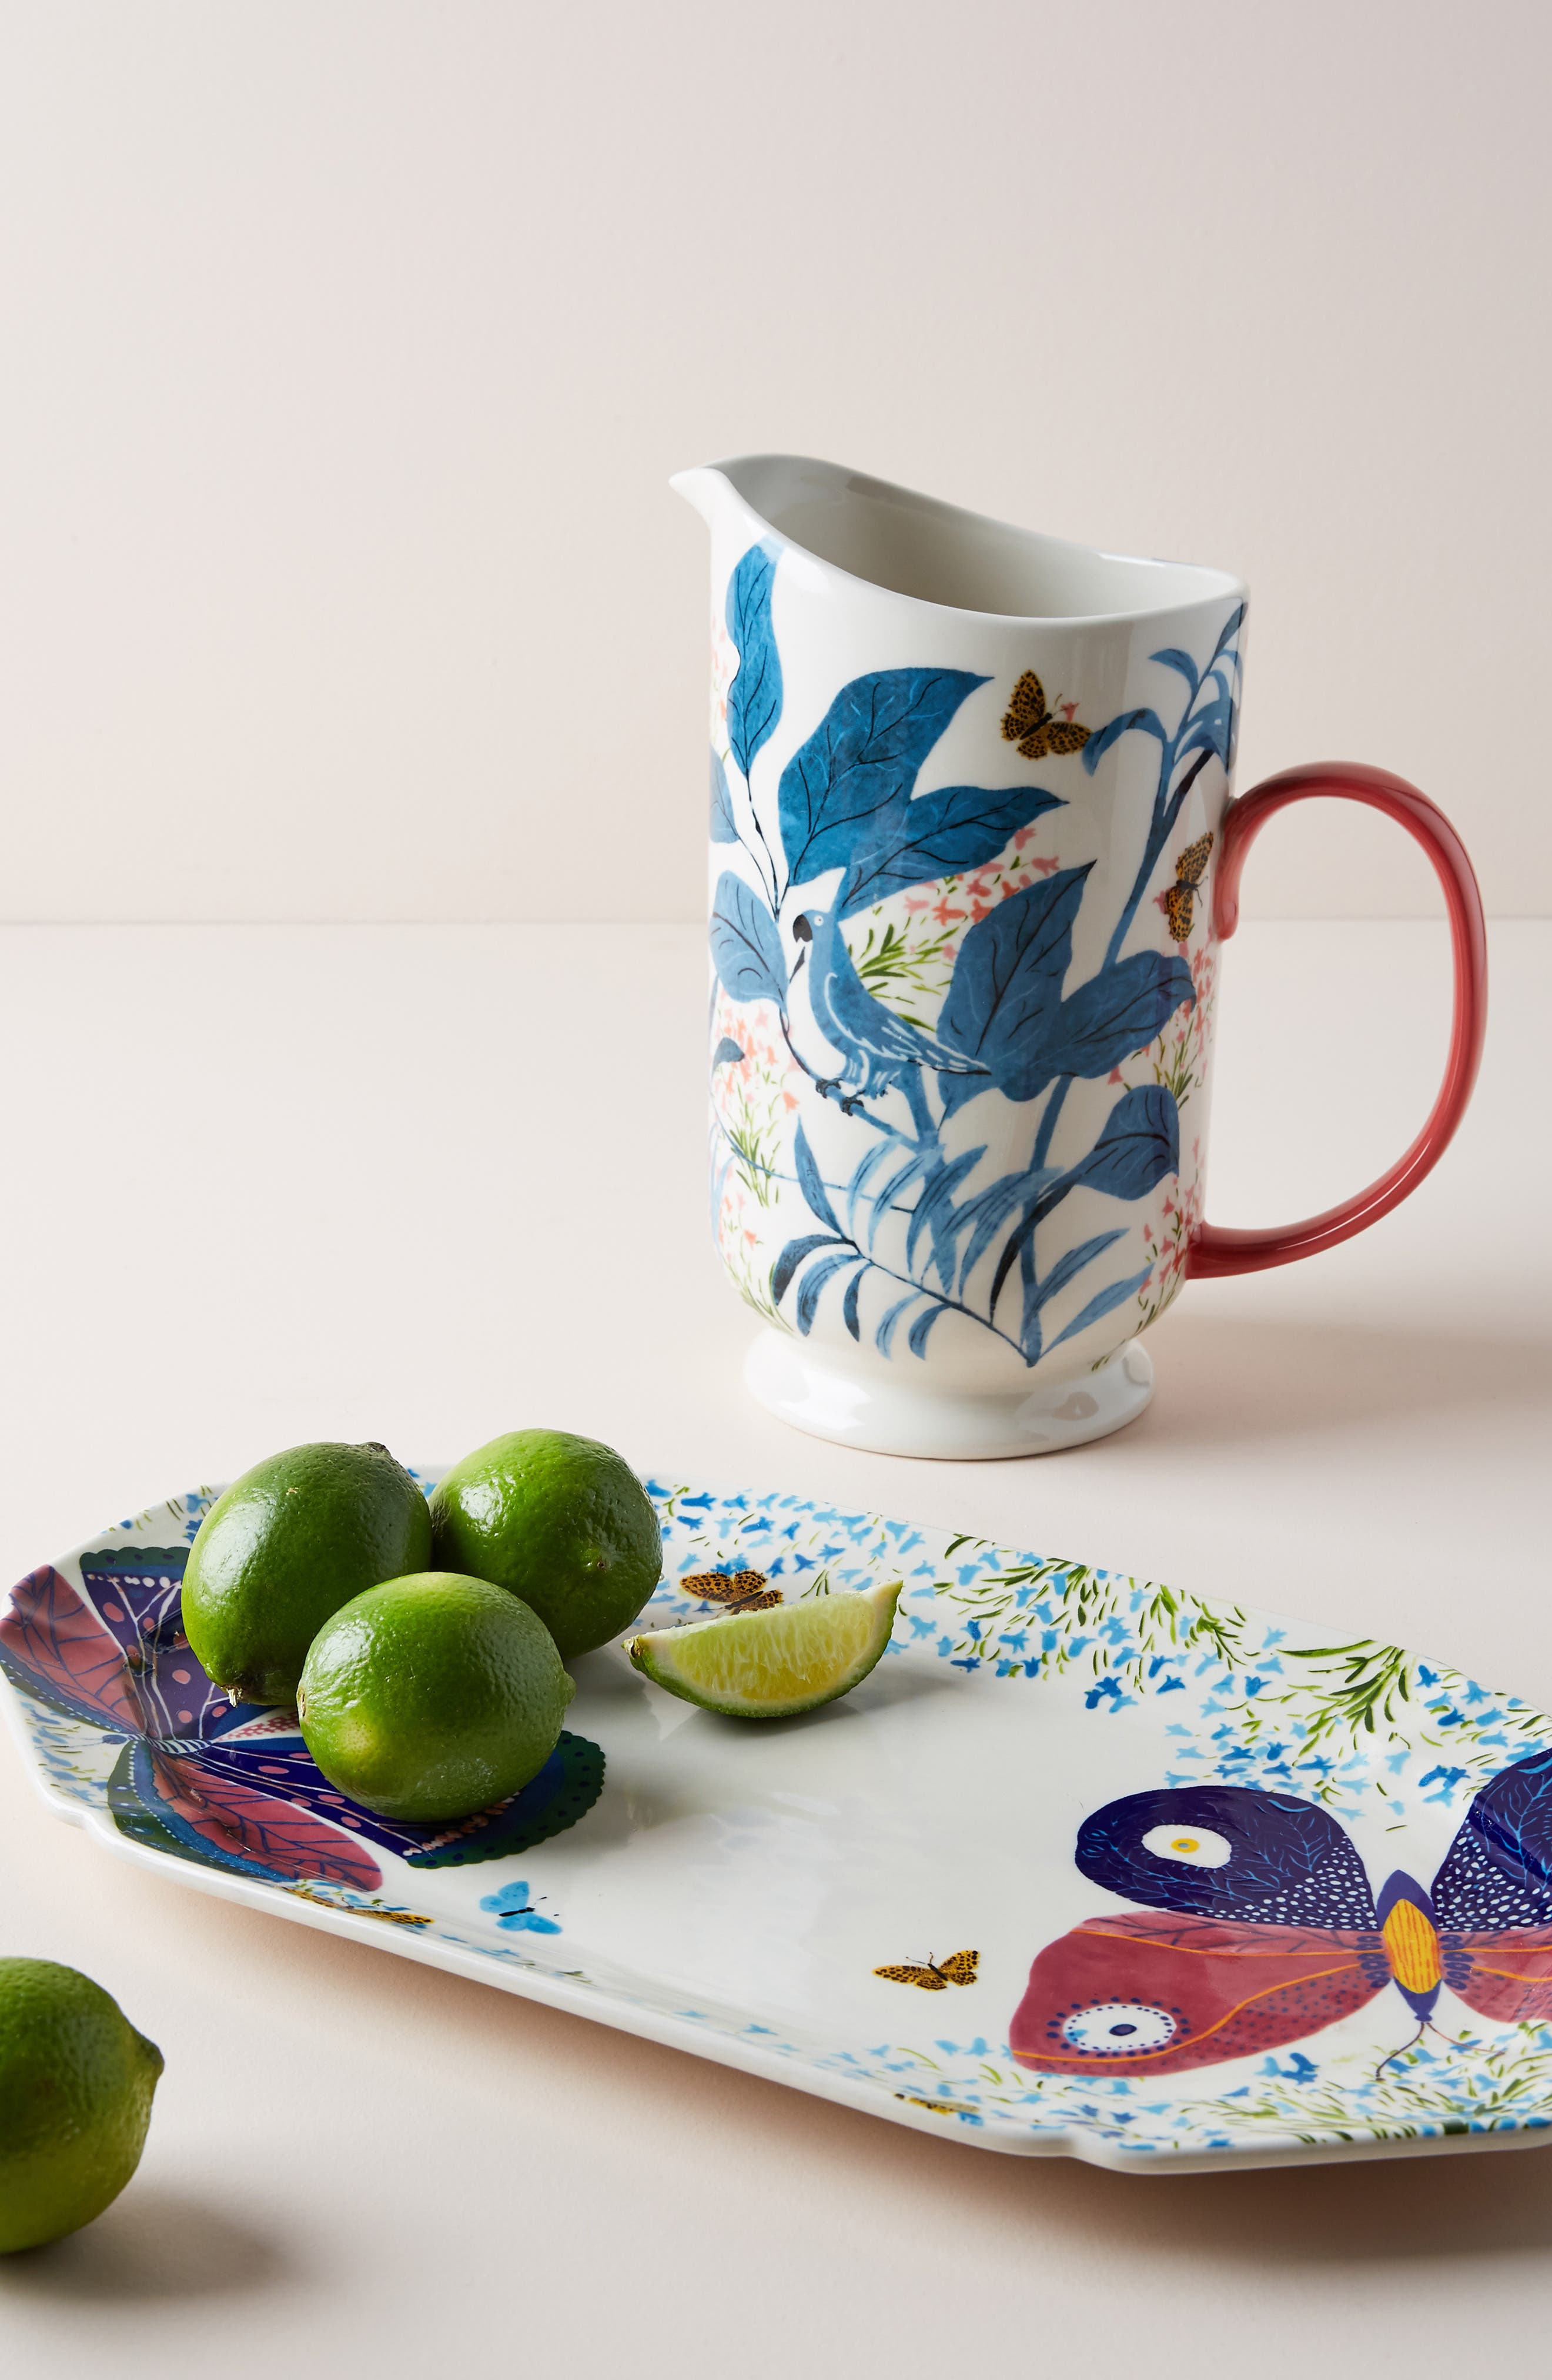 ANTHROPOLOGIE,                             Paule Marrot Butterfly Pitcher,                             Alternate thumbnail 4, color,                             BLUE